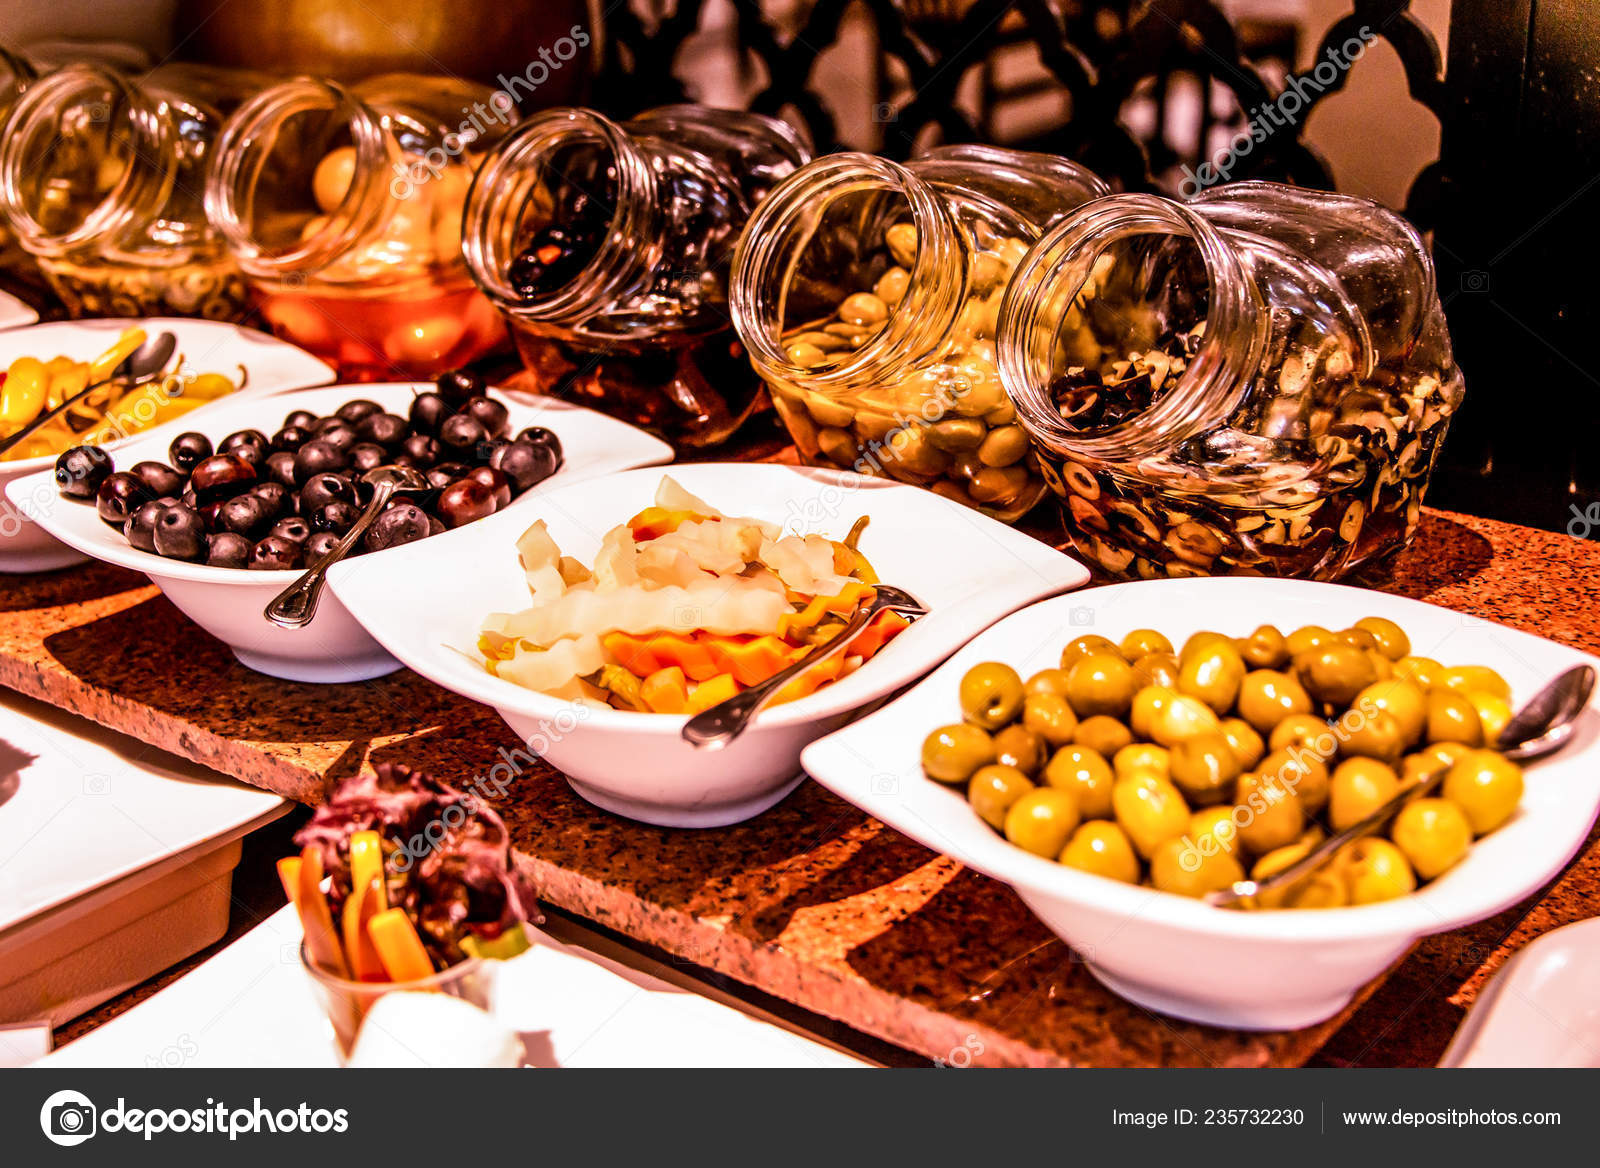 Variety Food Buffet Table Wine Snack Set Olives Cheese And Other Appetizer Italian Antipasti On Plate In Egypt Stock Photo Image By C Donogl 235732230